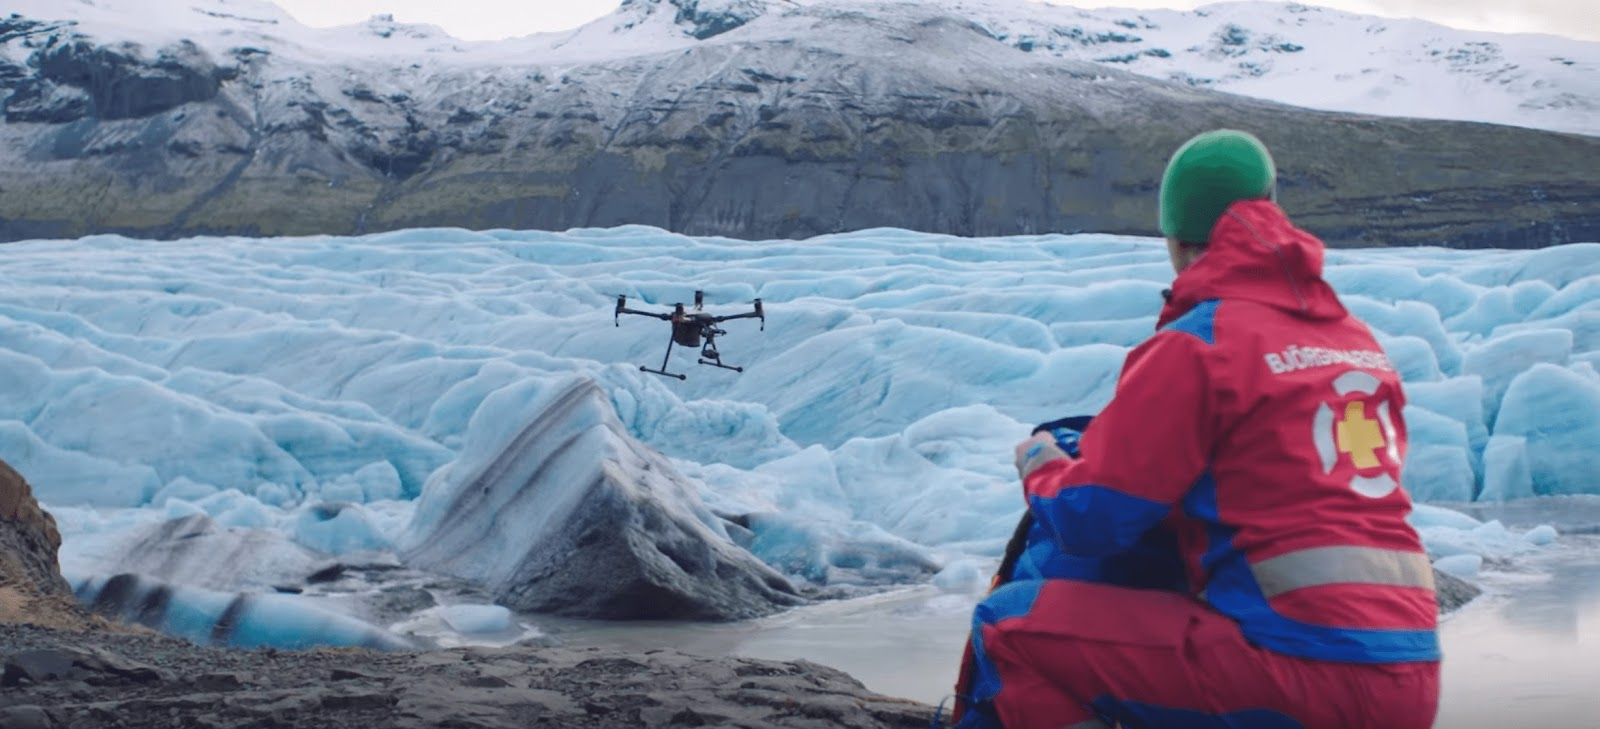 DJI AirWorks Says Drones Can Save Lives